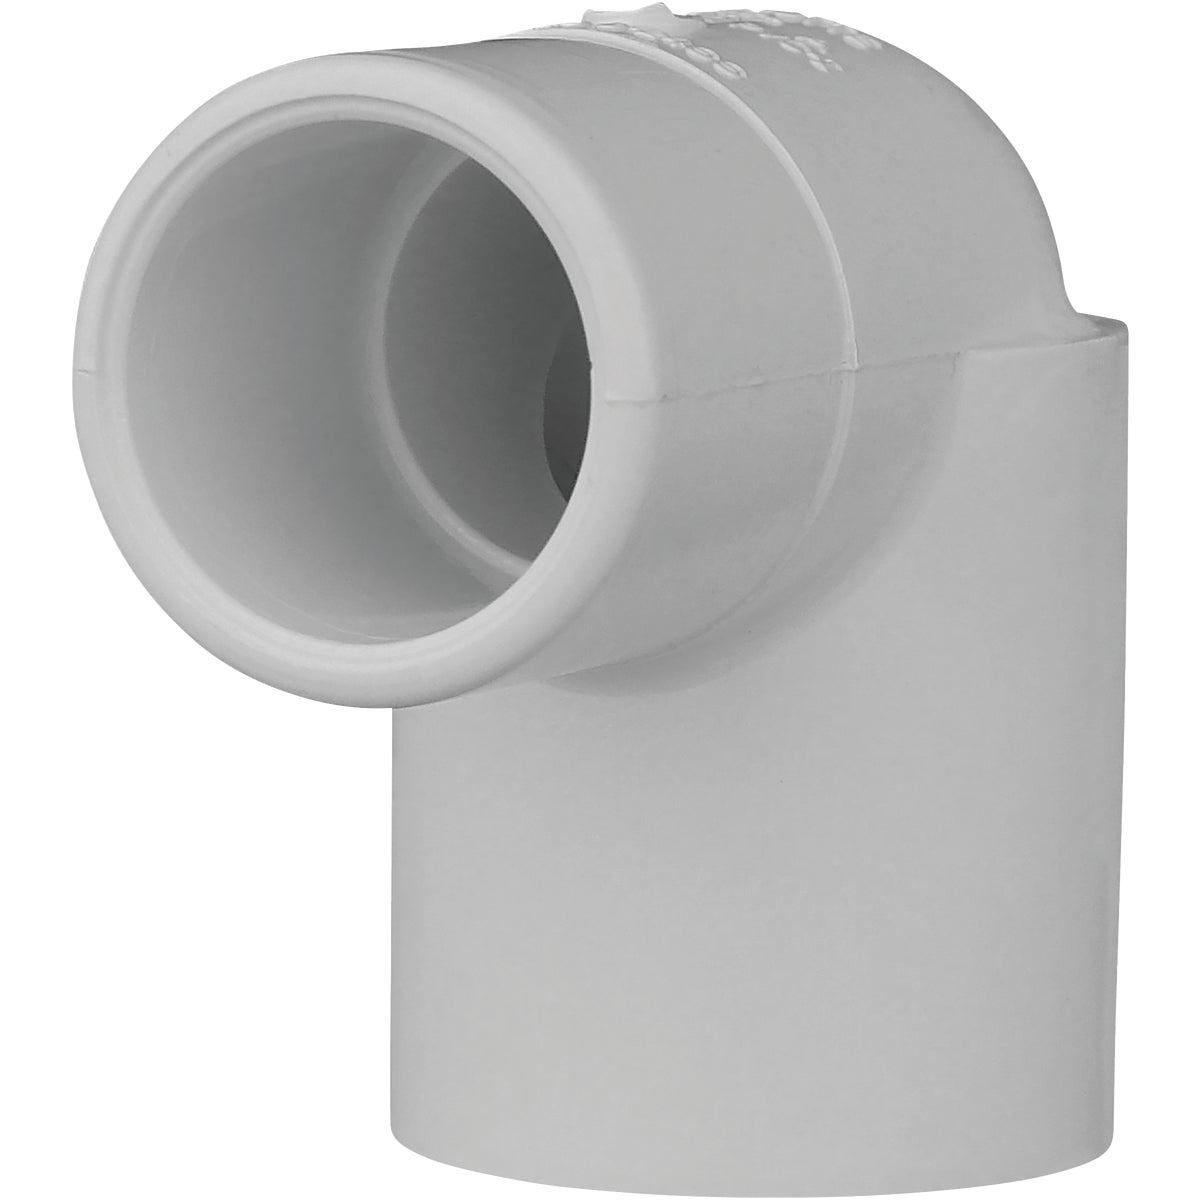 "1"" SXSP 90D STREET ELBOW - 32910 by Genova Inc"